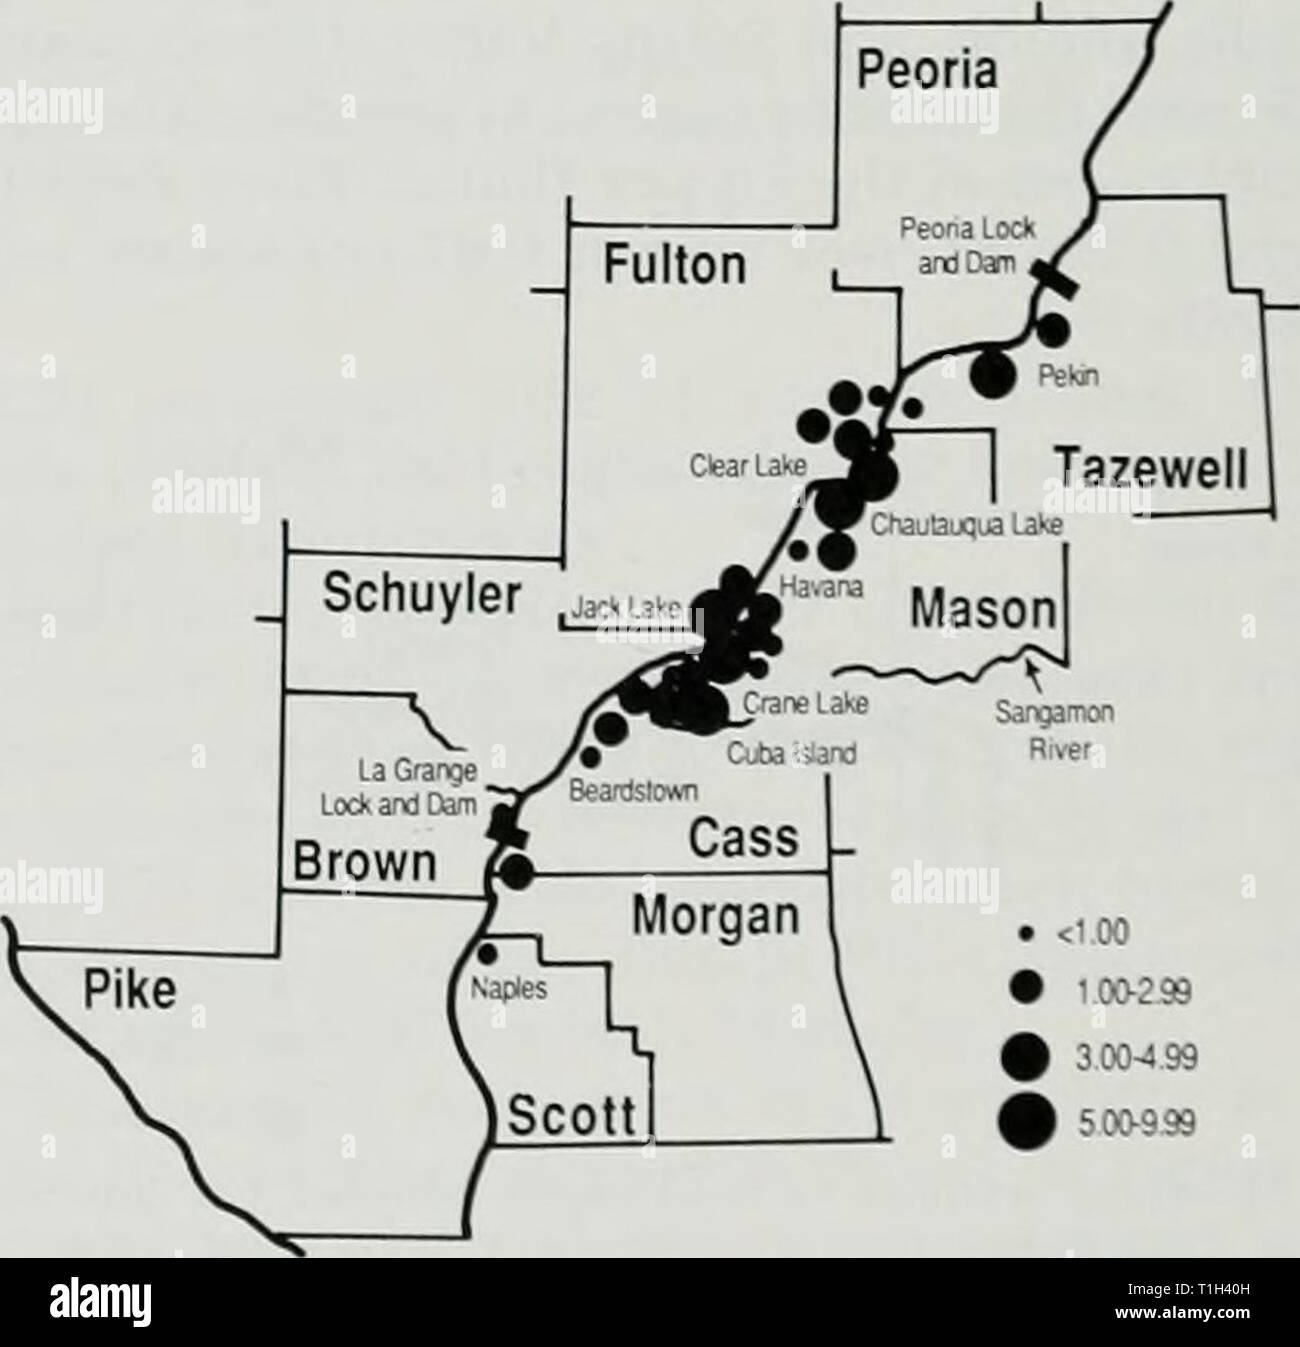 Distribution and abundance of winter Distribution and abundance of winter populations of bald eagles in Illinois  distributionabun129have Year: 1988  Fig. 24.-Mean number ol b.iUl eagles i census are,IS uilliiii llie Lower Illinois Ri' • 100-299  3.00-4-99 innied per inenior a er Region. 1972-1986. Fig. 22.-Fastern sh, into Senacliw'ine L.tk The estimated density of bald eagles in the Lower Illinois River Region averaged ().5(i per river mile or 0.49 per squaie mile of wetland habitat. The average density per scjuare mile of wetlands (0.49) in this re- gion was slighth higher than the value  Stock Photo